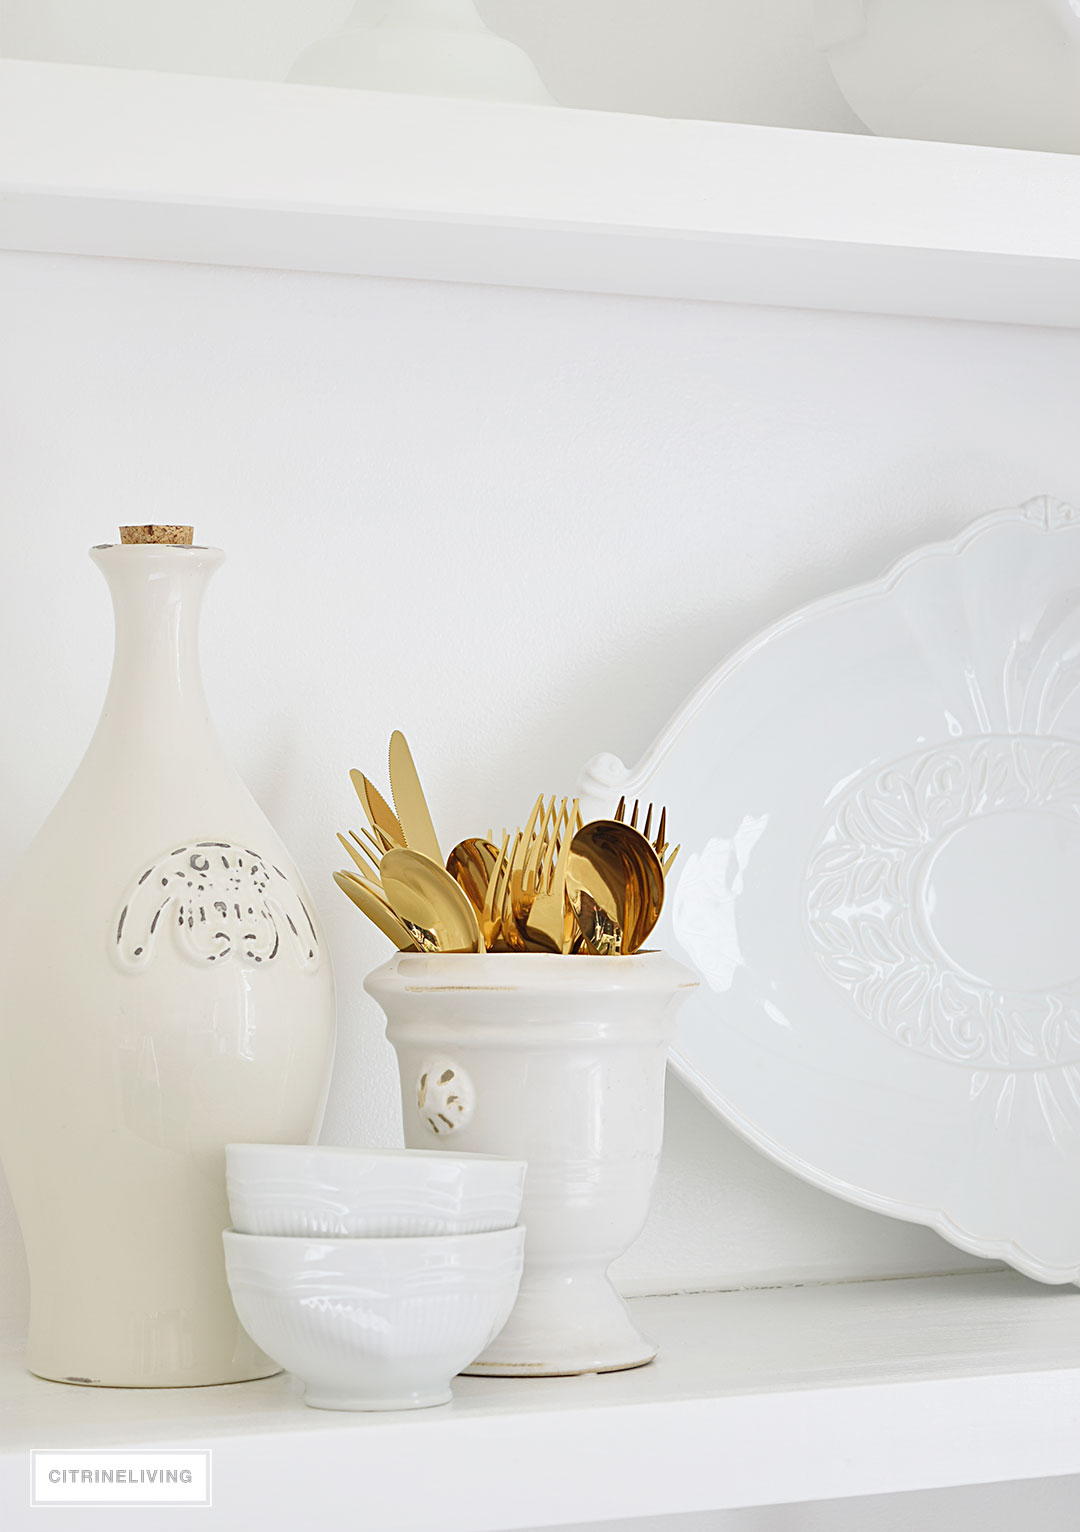 Layers of white and neutral accessories and serving pieces creates a clean look in any kitchen.